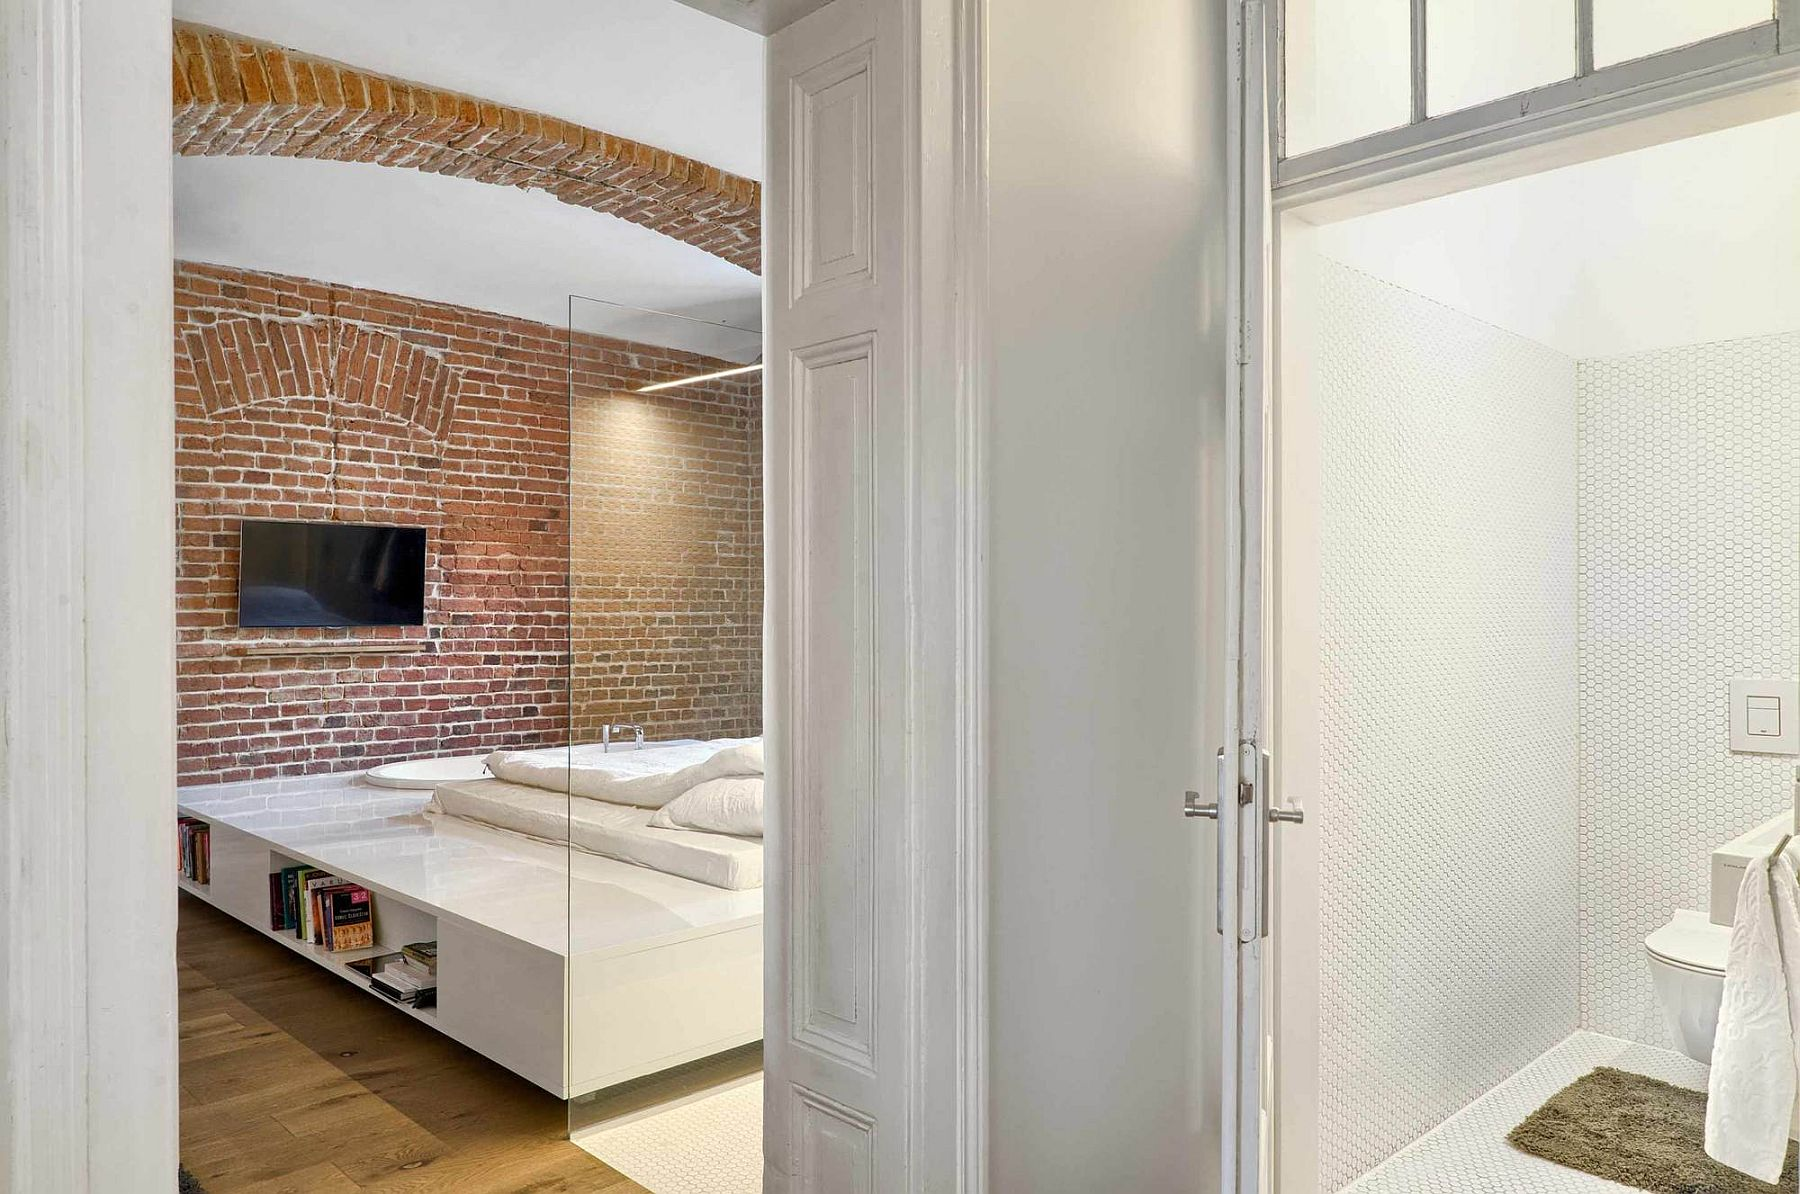 Stunning bedroom in white with brick walls inside the apartment of a football player